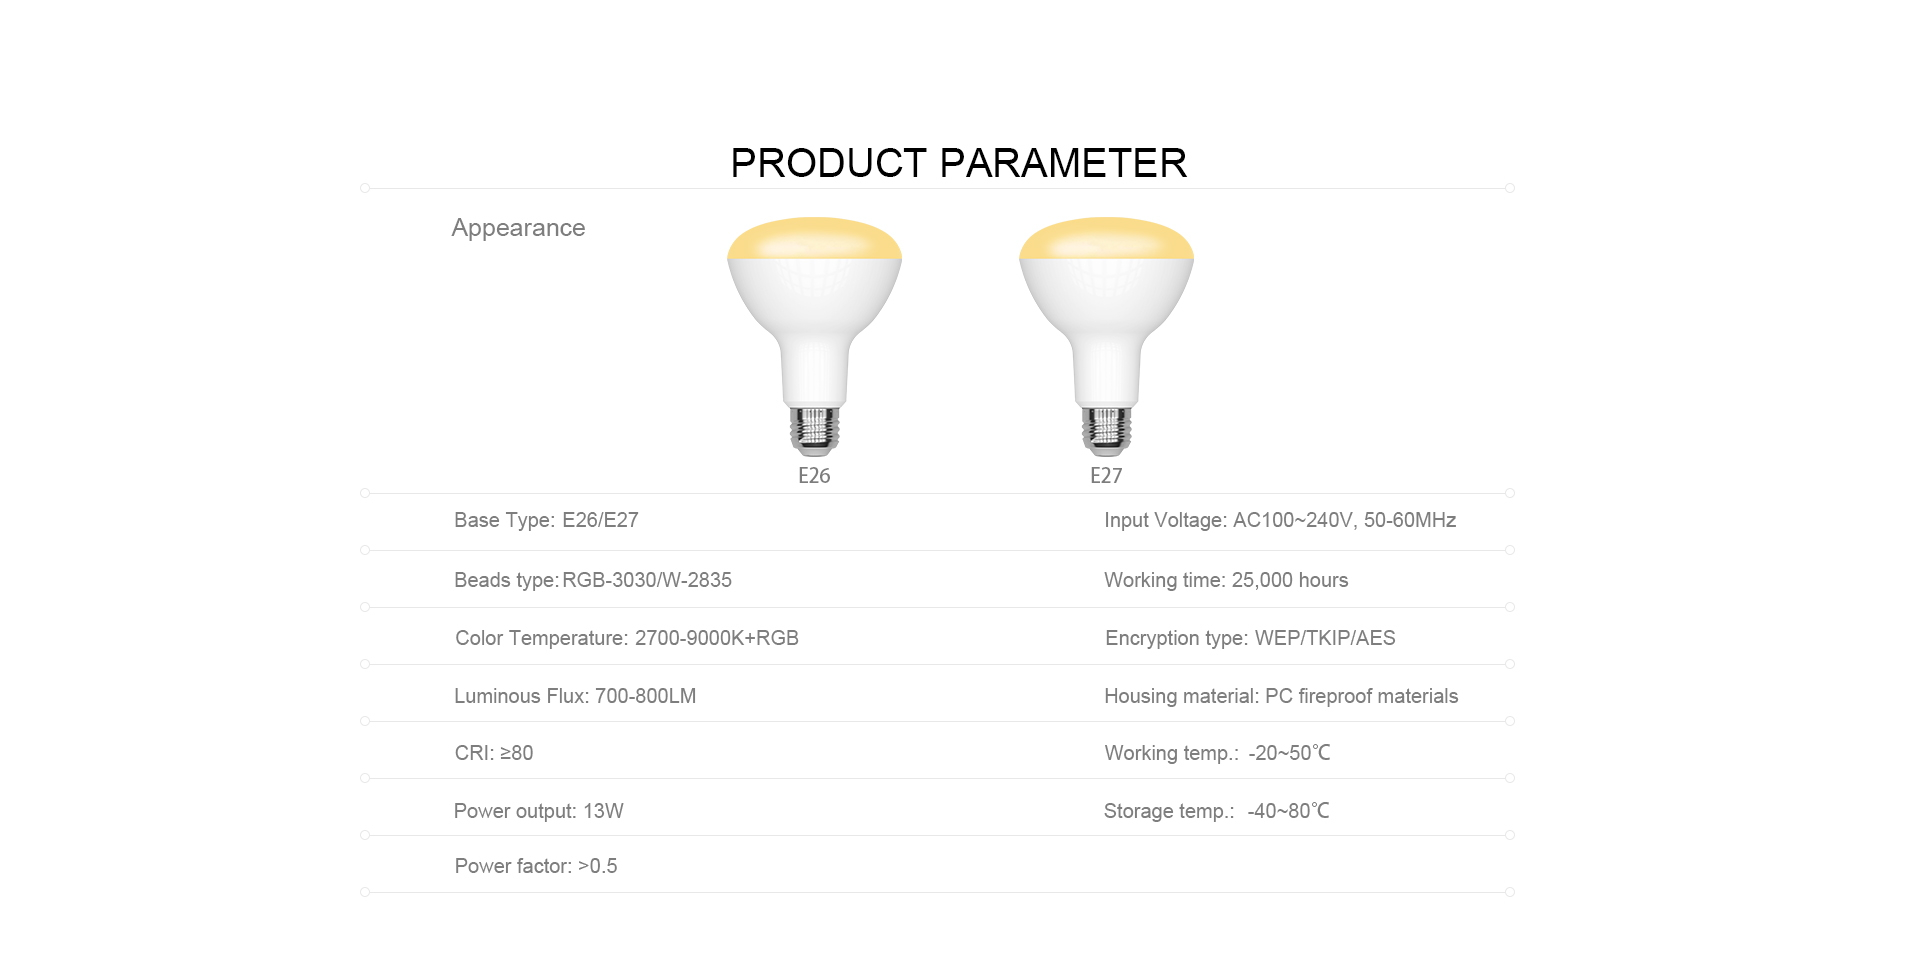 BR30 Smart RBG Light Bulb